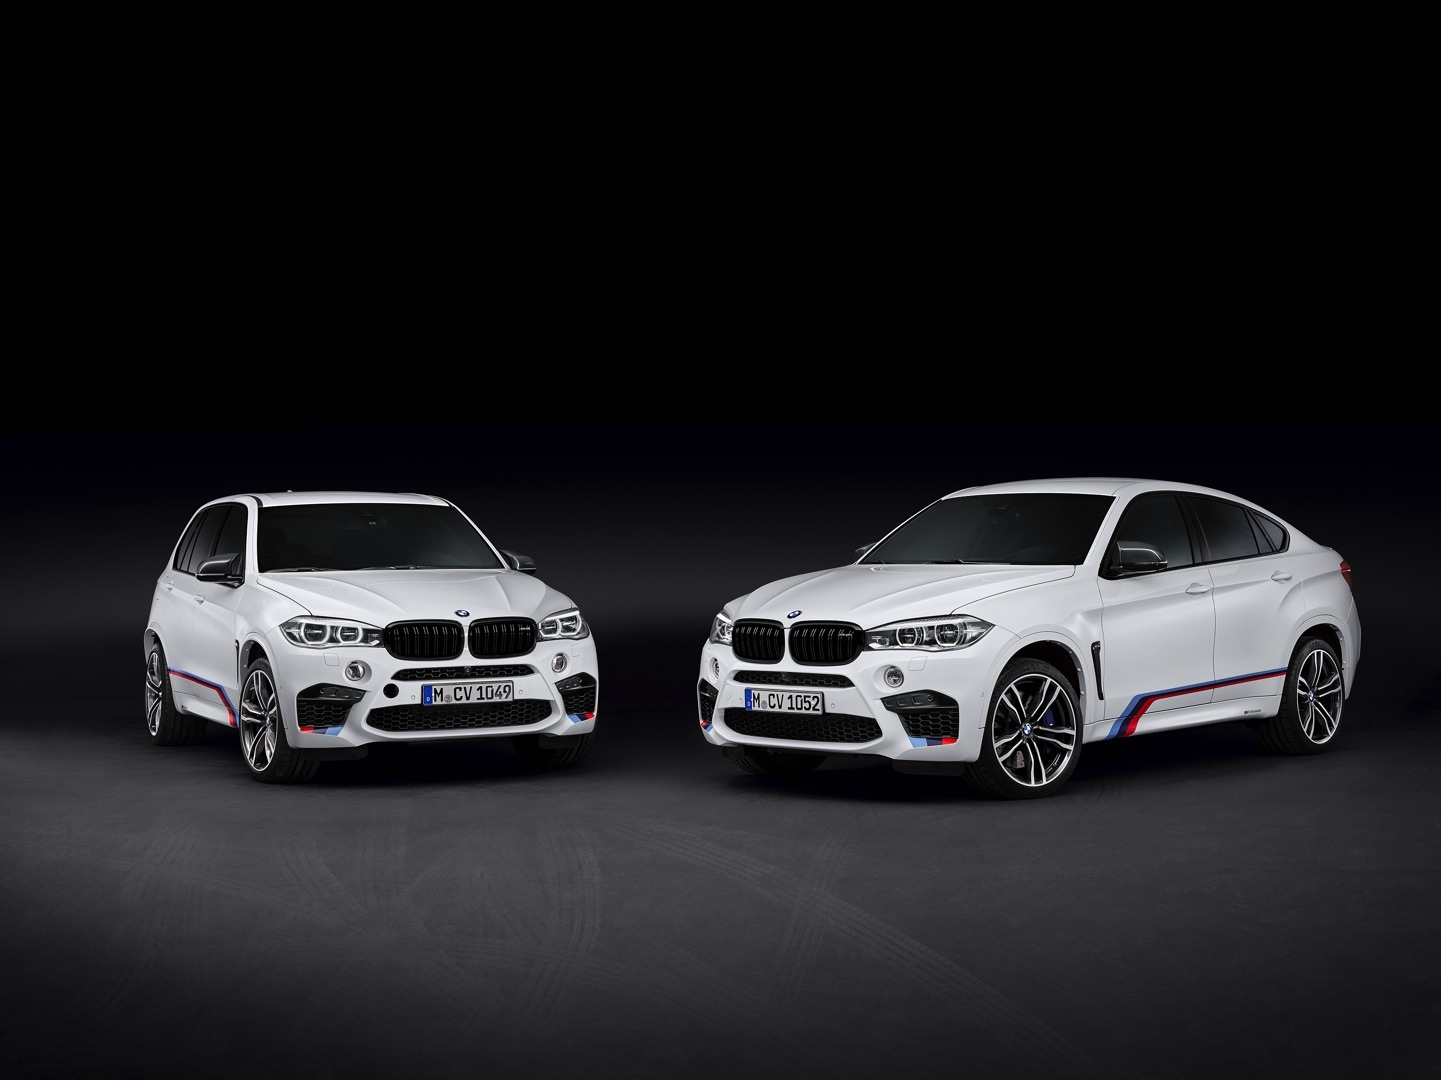 971e9842f0f BMW Unveils M Performance Parts for X5 M and X6 M Models - autoevolution